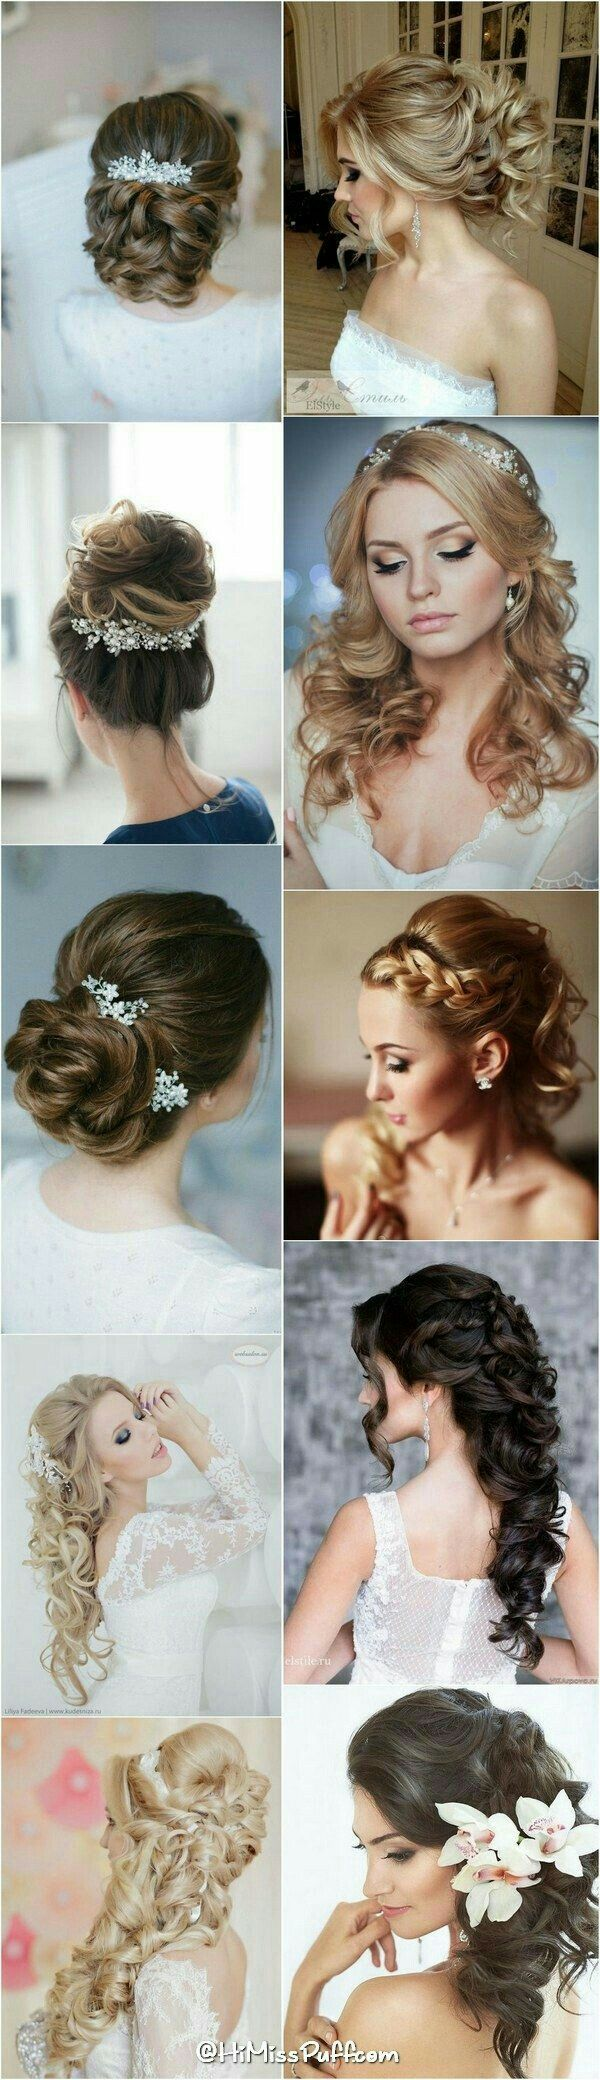 Gorgeous bridal hairstyles #updo #bridalhairstyles #bride #weddinghair #wedding #hairstyles